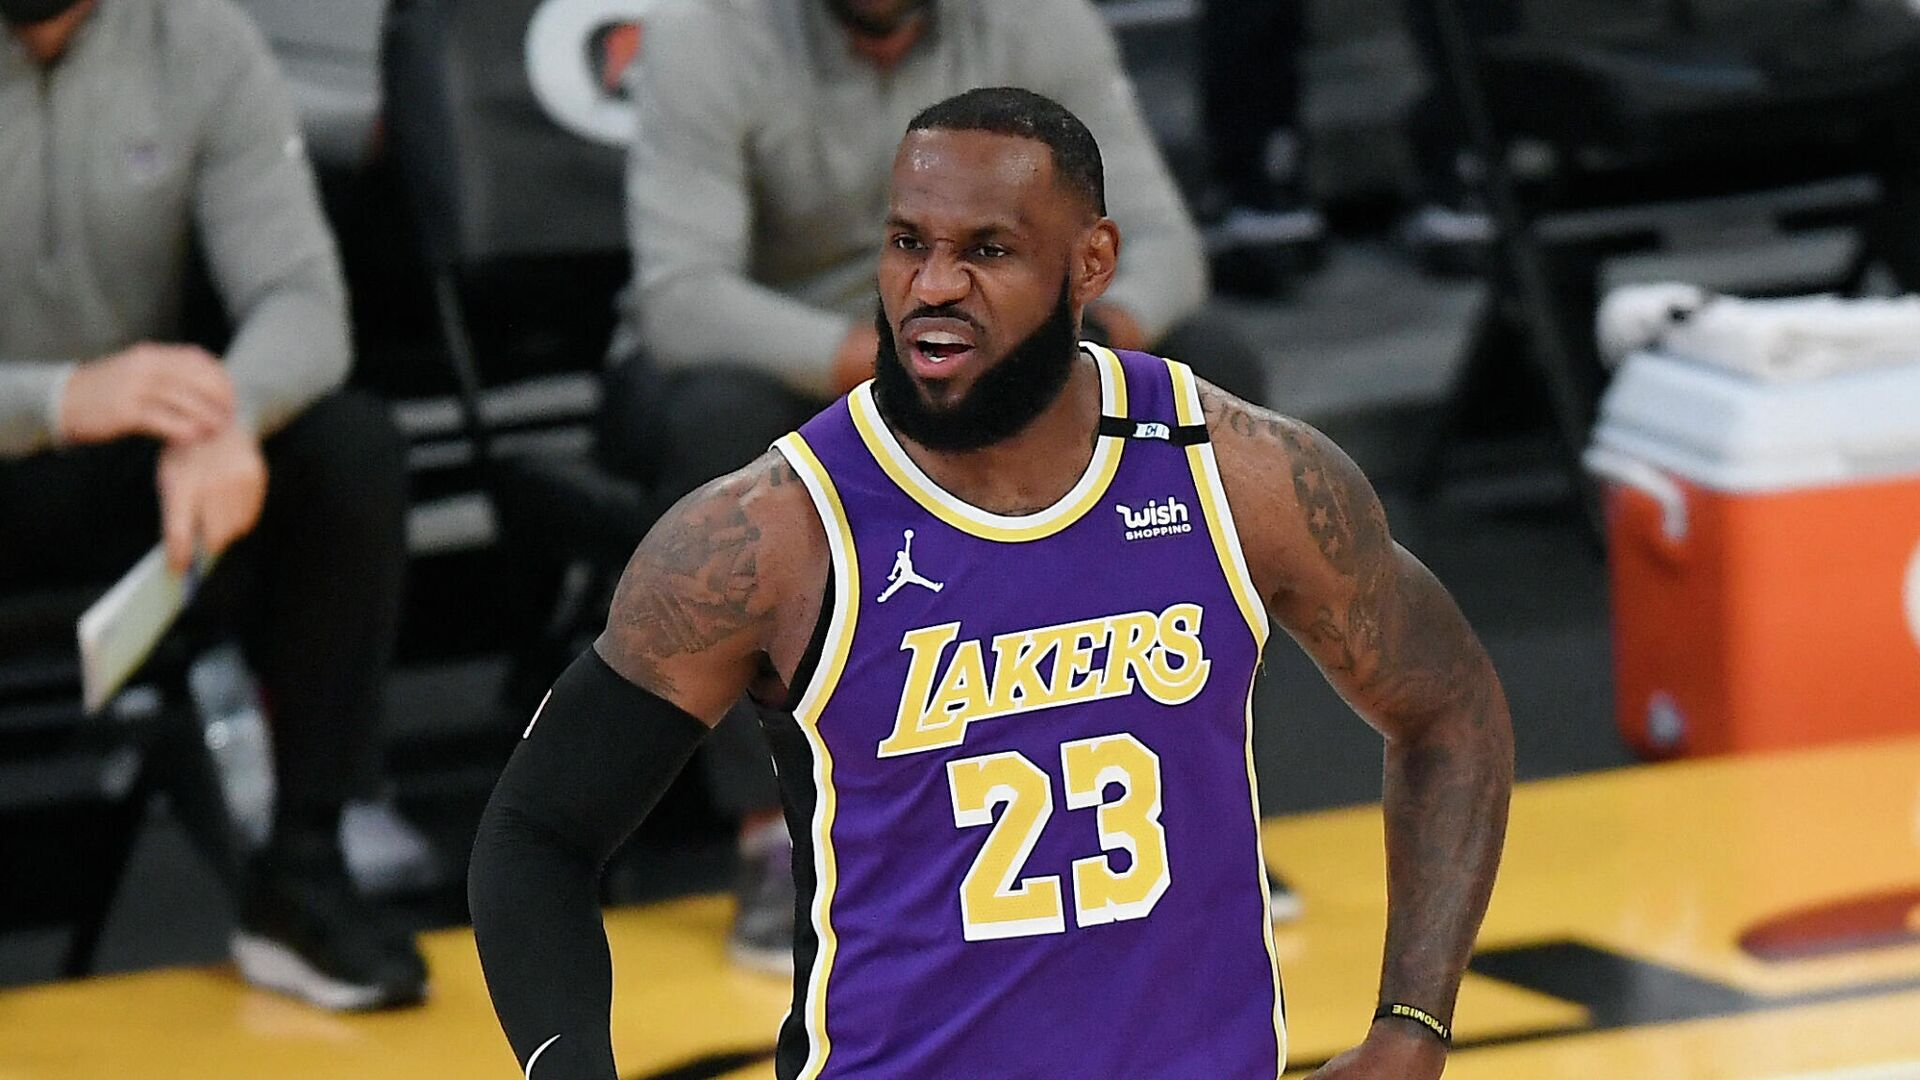 LOS ANGELES, CA - APRIL 30: LeBron James #23 of the Los Angeles Lakers reacts during the first half against the Sacramento Kings at Staples Center on April 30, 2021 in Los Angeles, California. NOTE TO USER: User expressly acknowledges and agrees that, by downloading and or using this photograph, User is consenting to the terms and conditions of the Getty Images License Agreement.   Kevork Djansezian/Getty Images/AFP (Photo by KEVORK DJANSEZIAN / GETTY IMAGES NORTH AMERICA / Getty Images via AFP) - РИА Новости, 1920, 03.05.2021